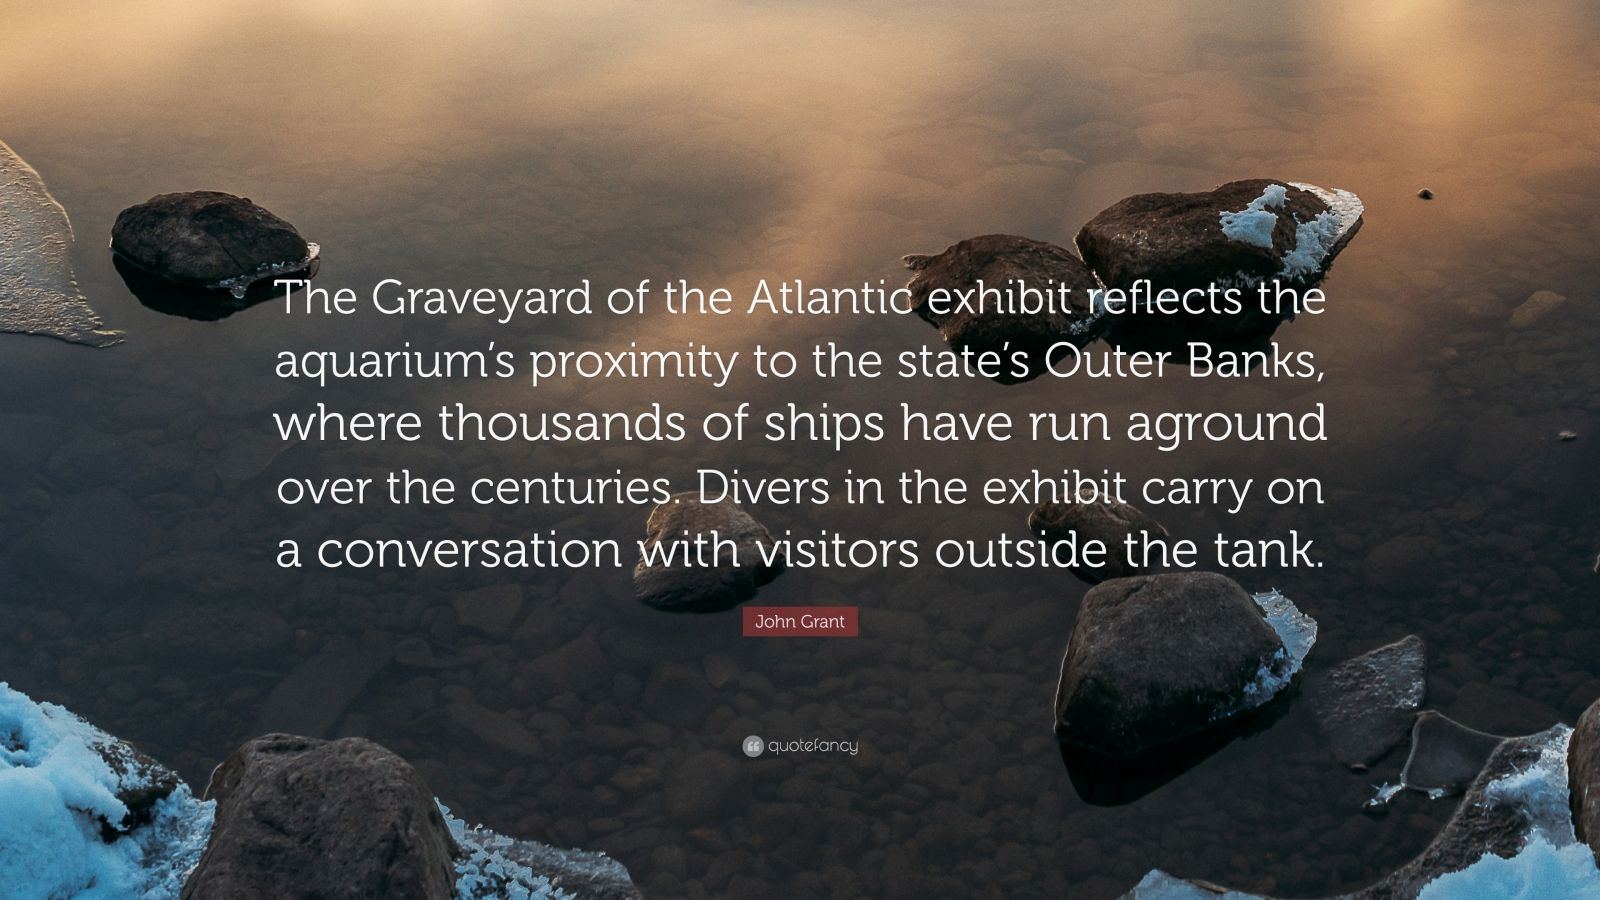 """John Grant Quote: """"The Graveyard of the Atlantic exhibit reflects the aquarium's proximity to the state's Outer Banks, where thousands of ships have run aground over the centuries. Divers in the exhibit carry on a conversation with visitors outside the tank."""""""